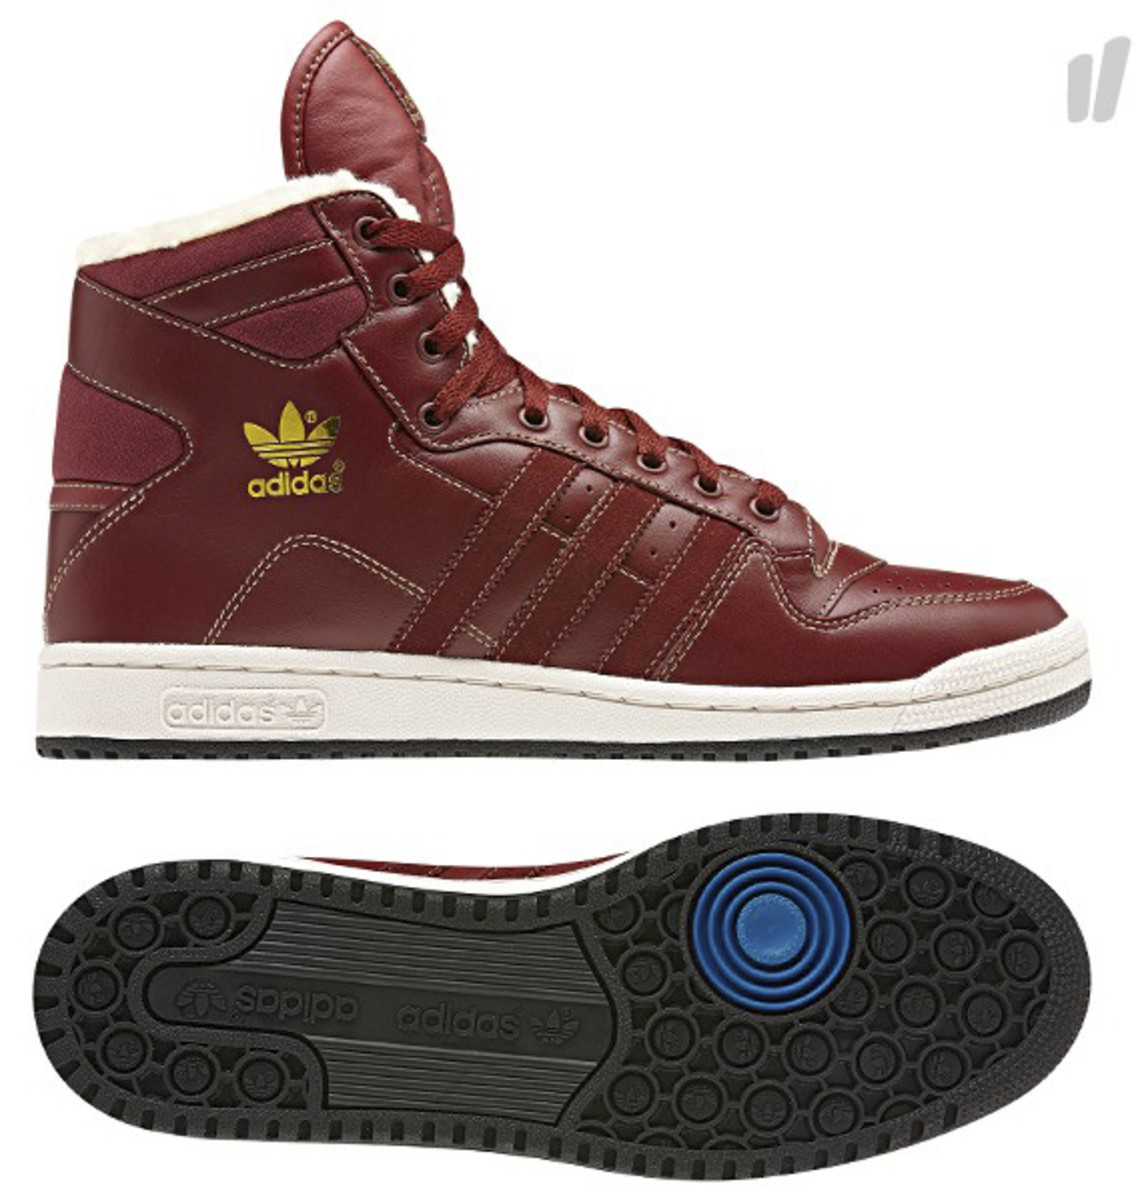 adidas-originals-fall-winter-footwear-collection-preview-12